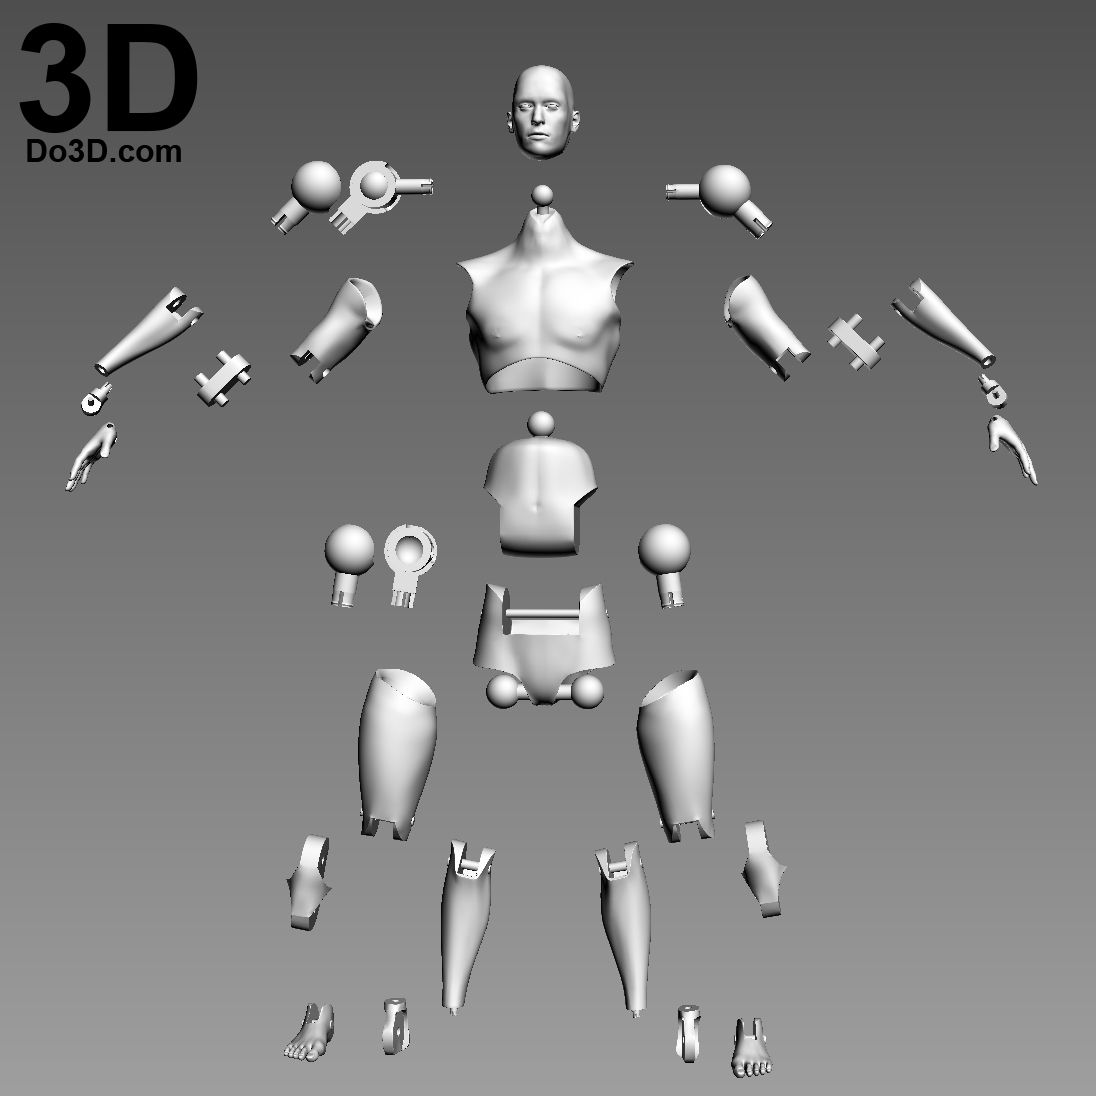 3D Printable Model Articulated Action Figure Toy With